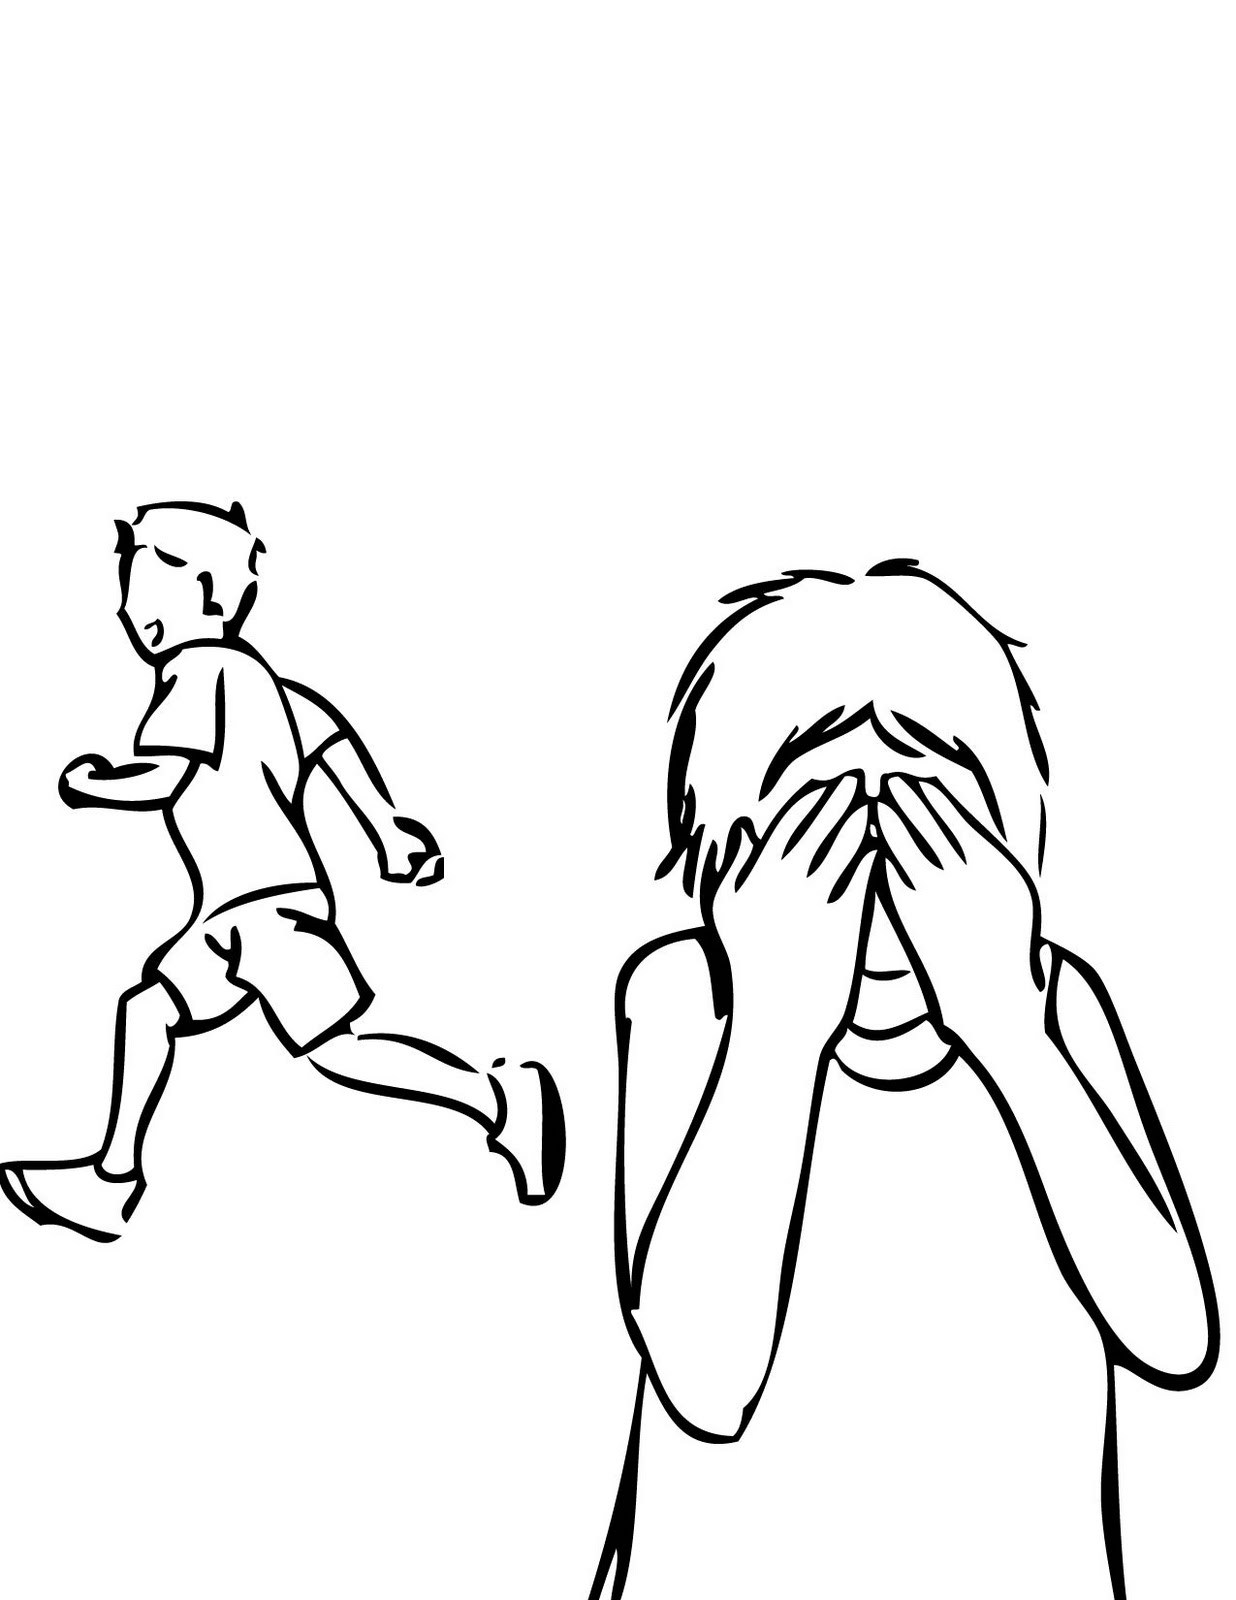 Play hide and seek clipart black and white